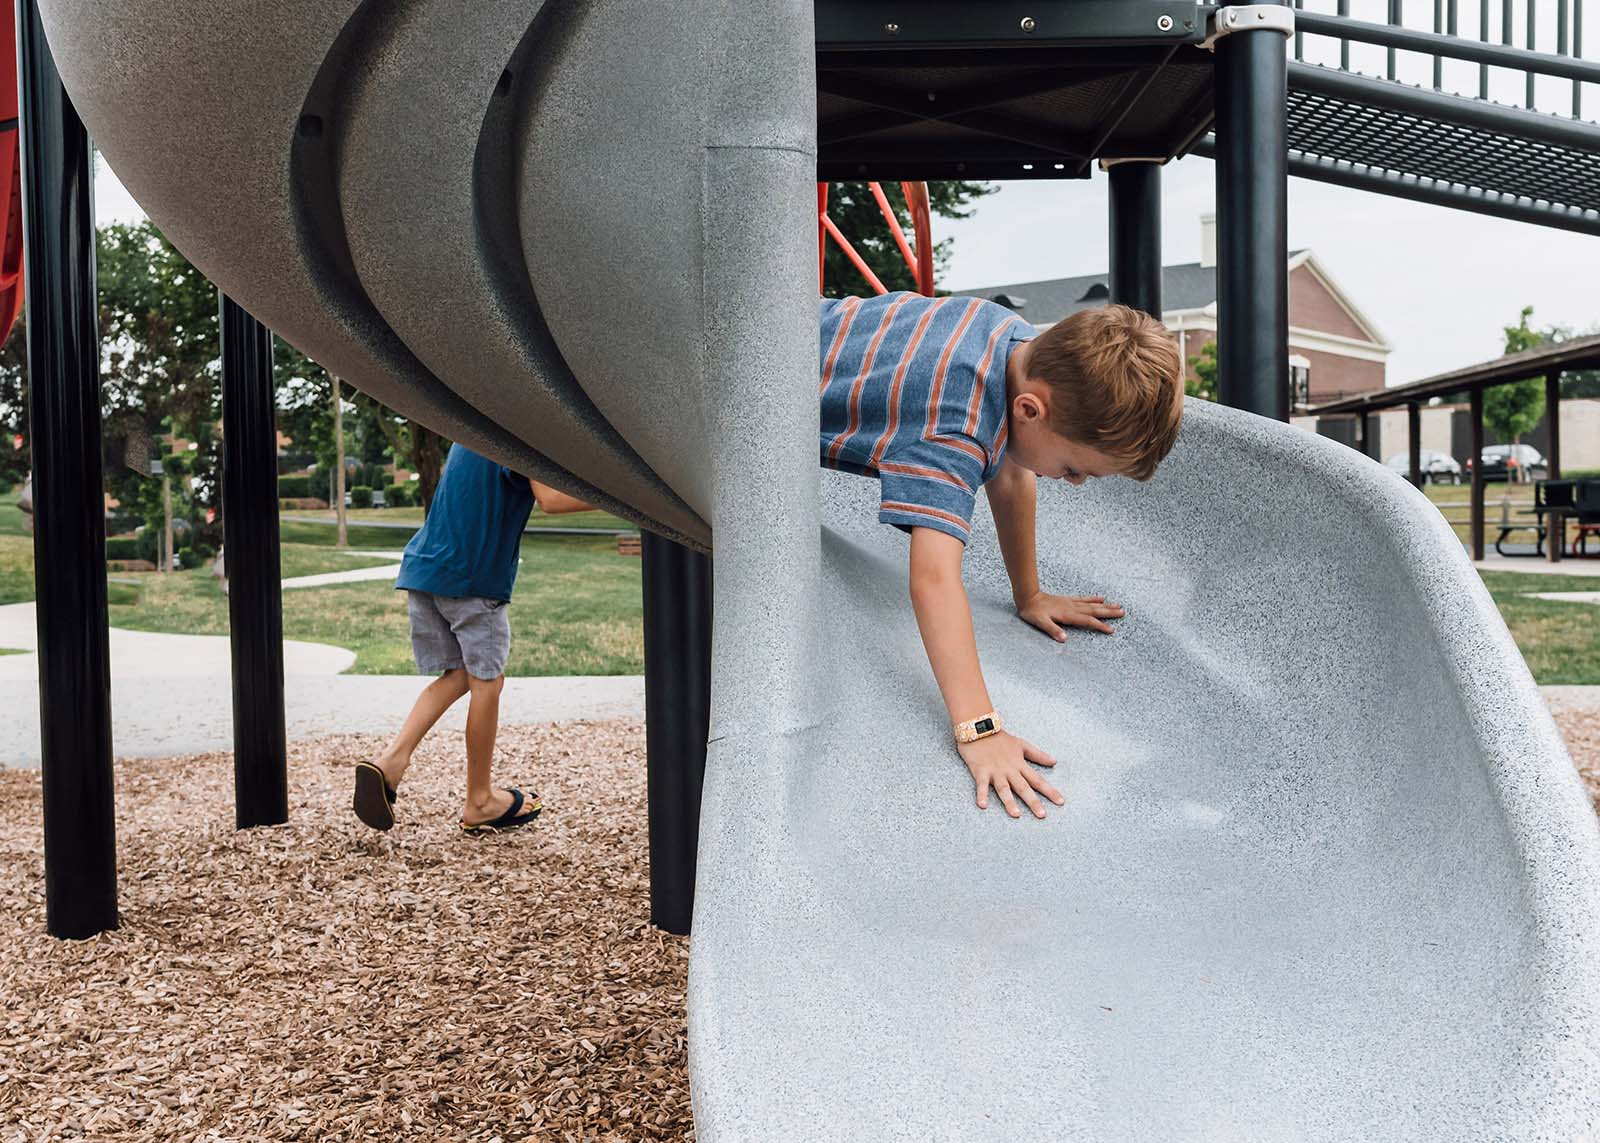 A boy slides down a curved slide while another runs under, creating a humorous image.